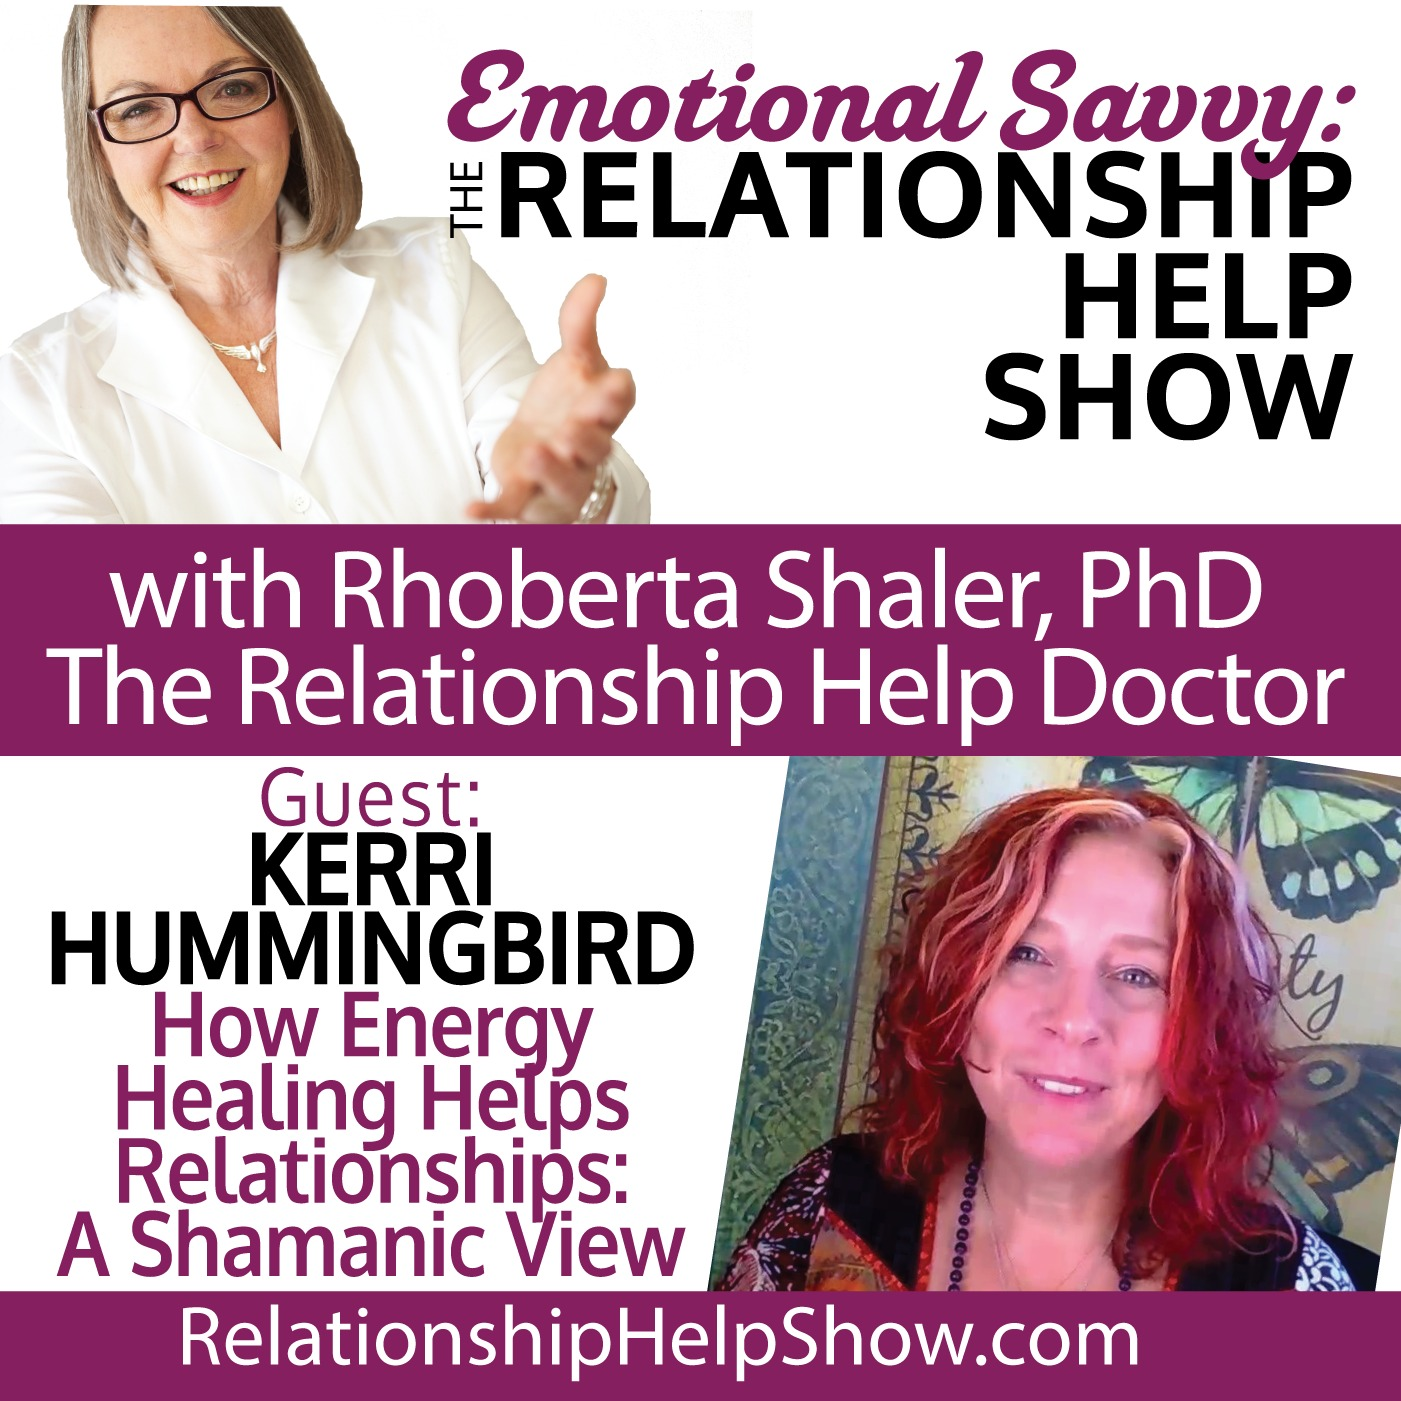 What is Emotional Savvy & Using it to Heal Relationships Energetically GUEST: Kerri Hummingbird